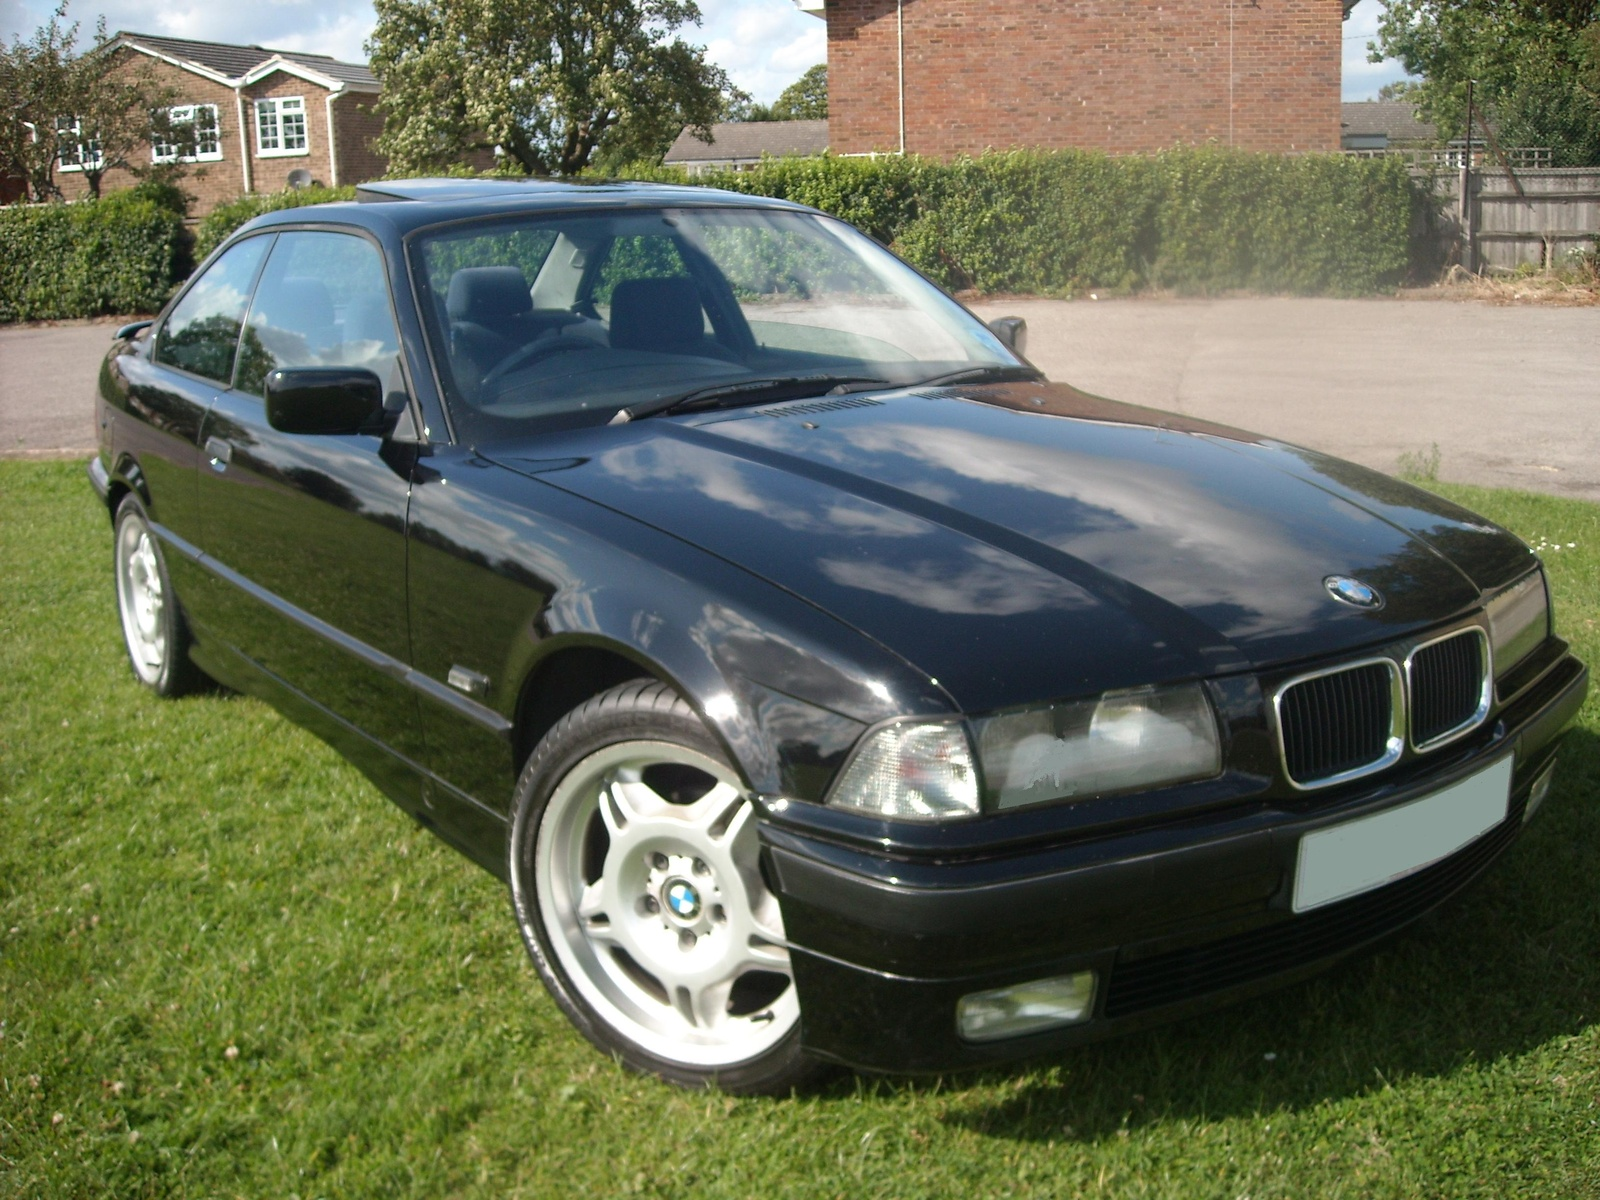 BMW 3 series 324td 1994 photo - 9